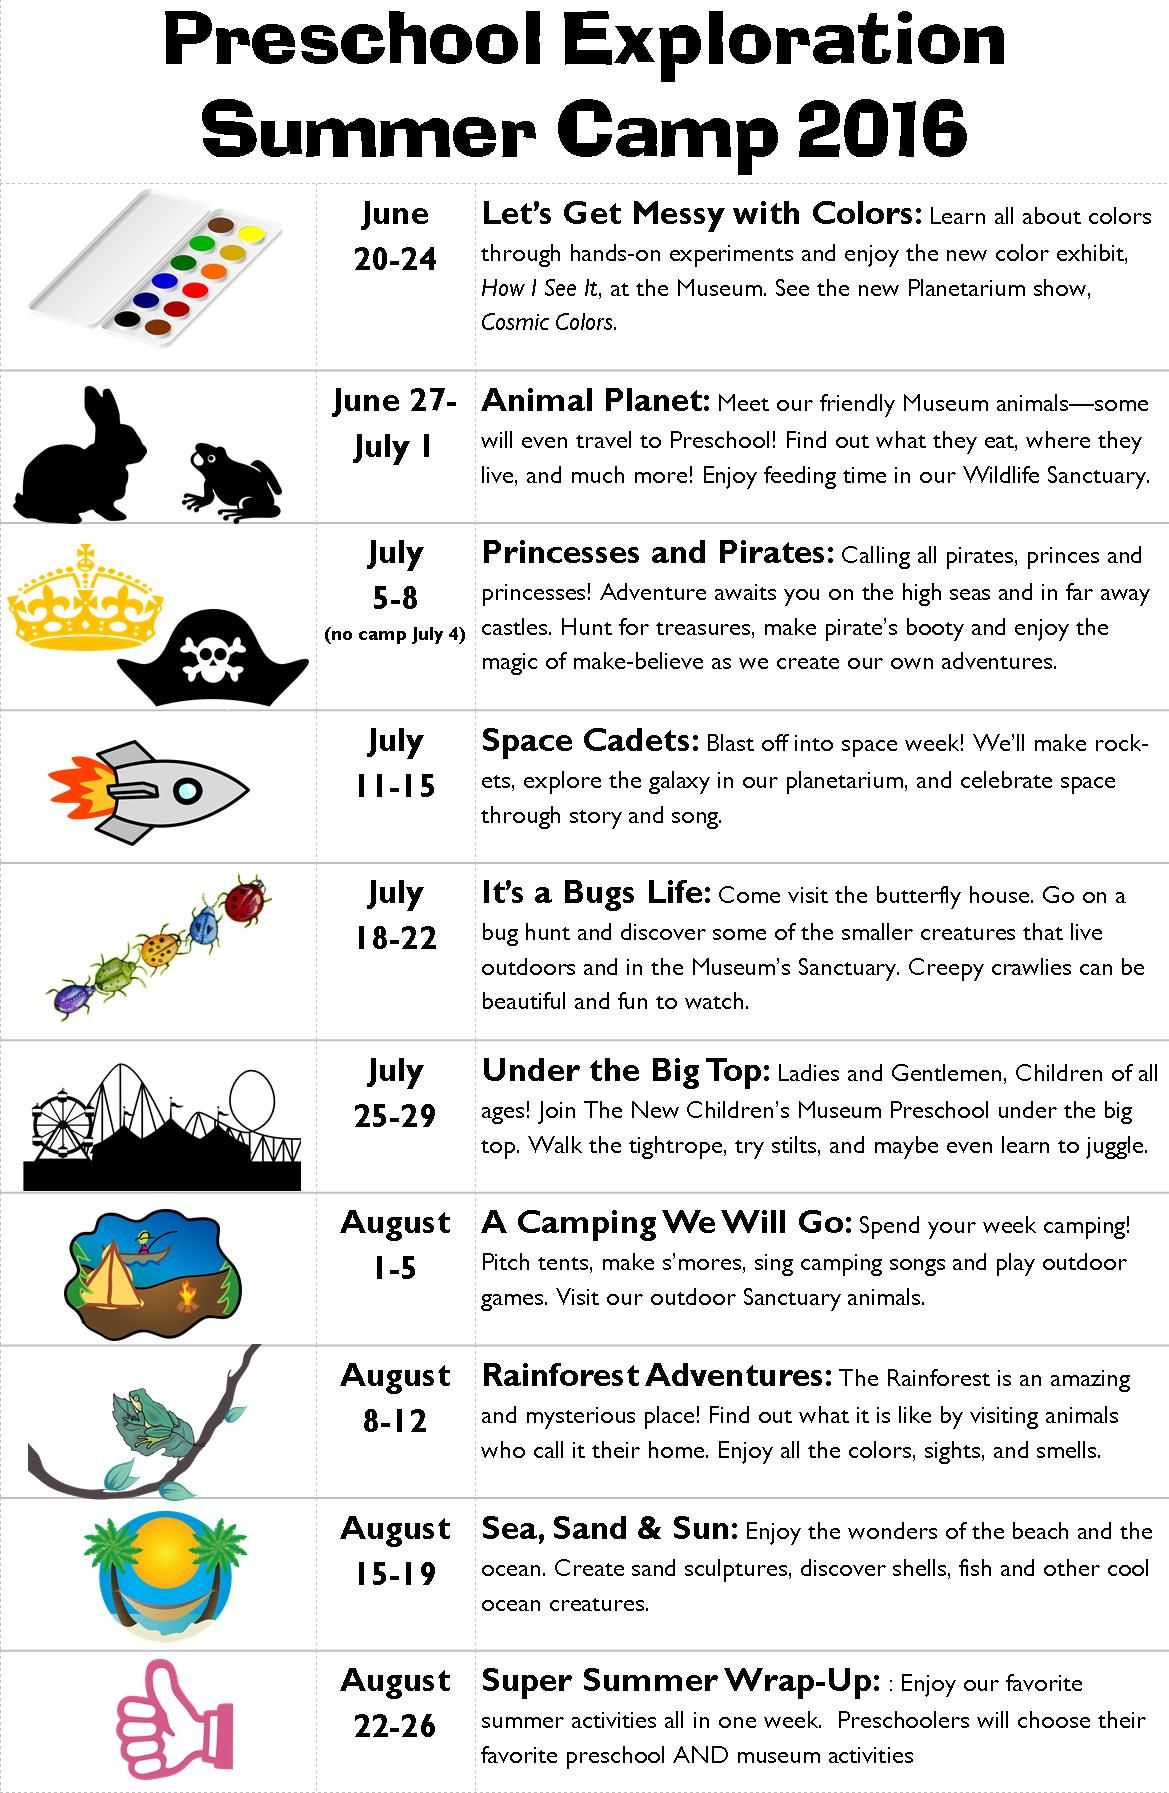 Summer Camp Theme Ideas Check This Useful Article By Going To